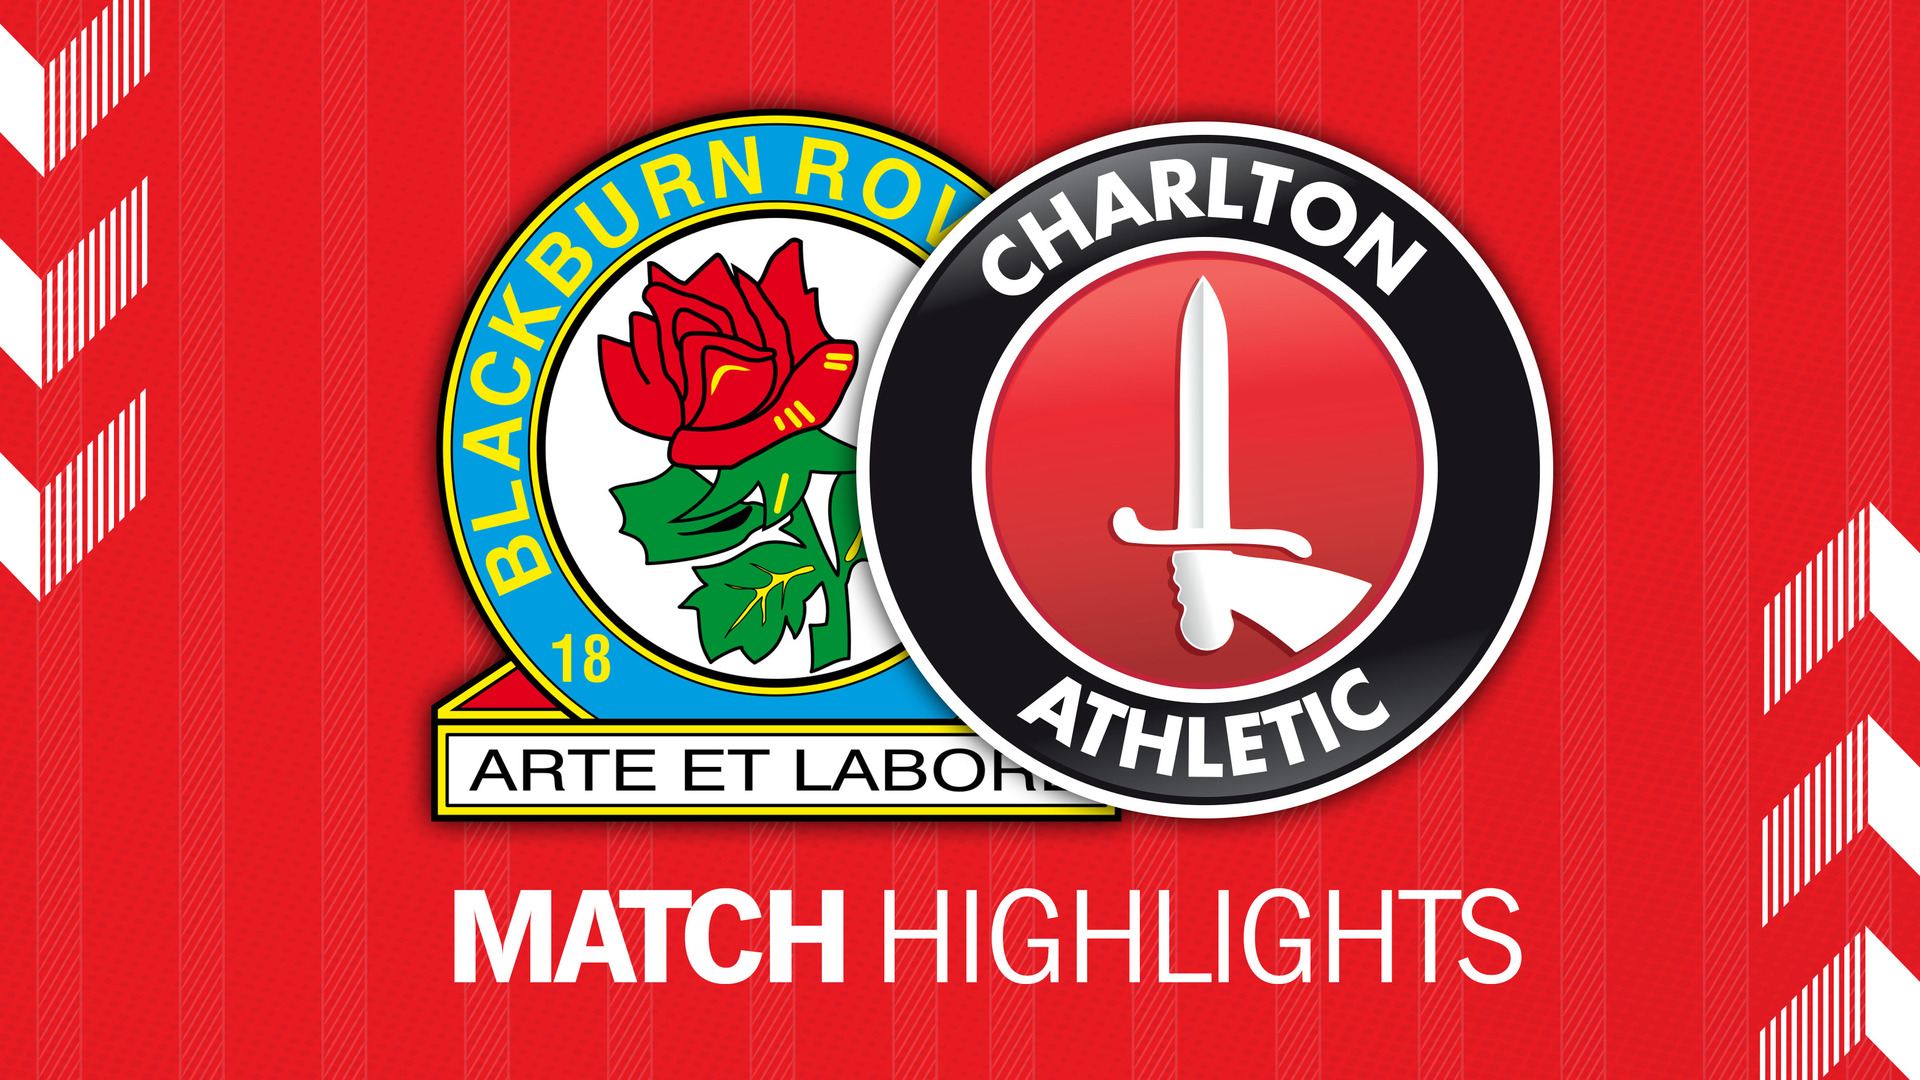 1 HIGHLIGHTS | Blackburn Rovers 1 Charlton 2 (August 2019)